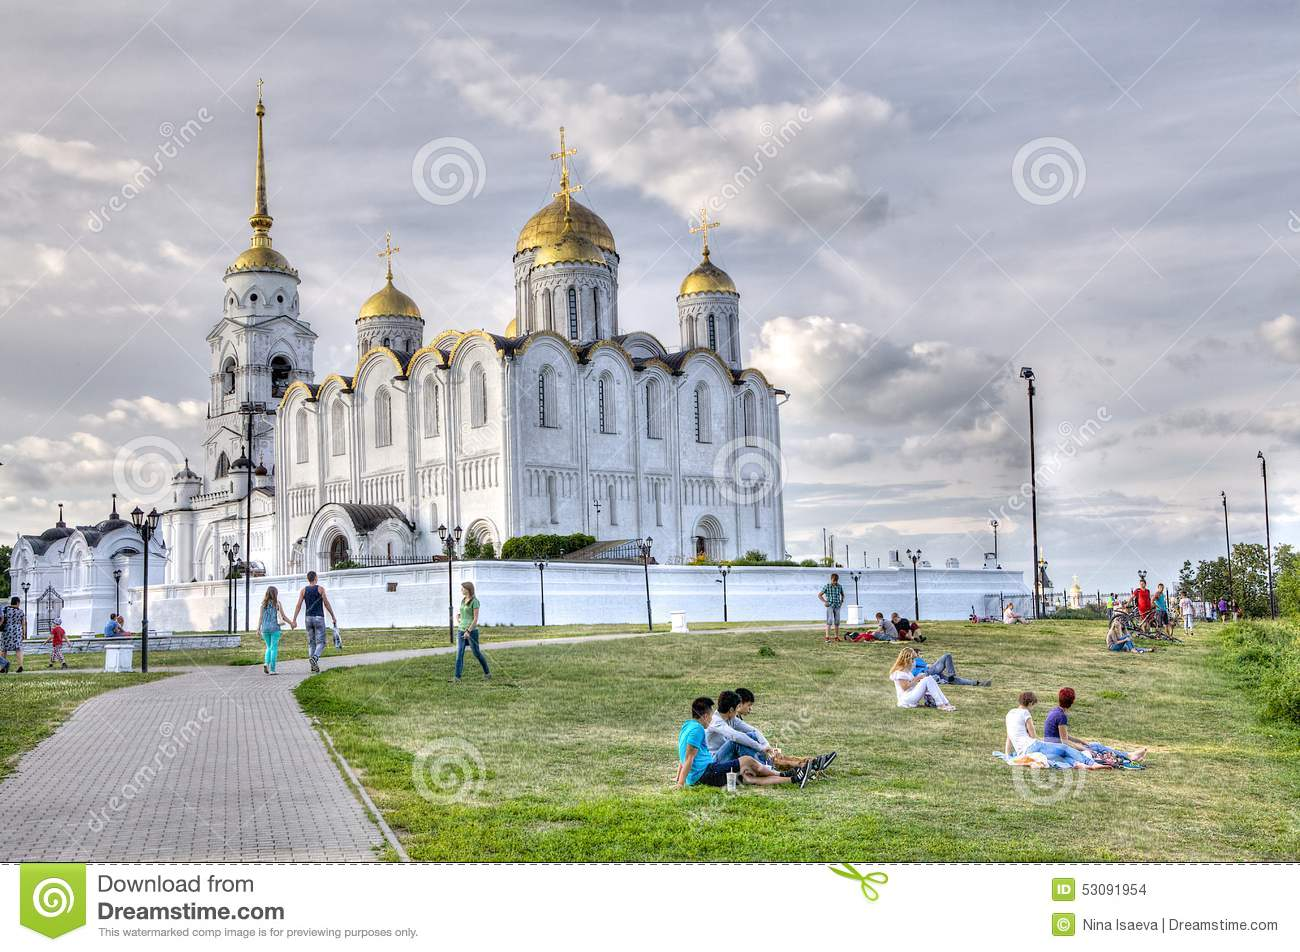 The founding of Vladimir. City history and interesting facts 65